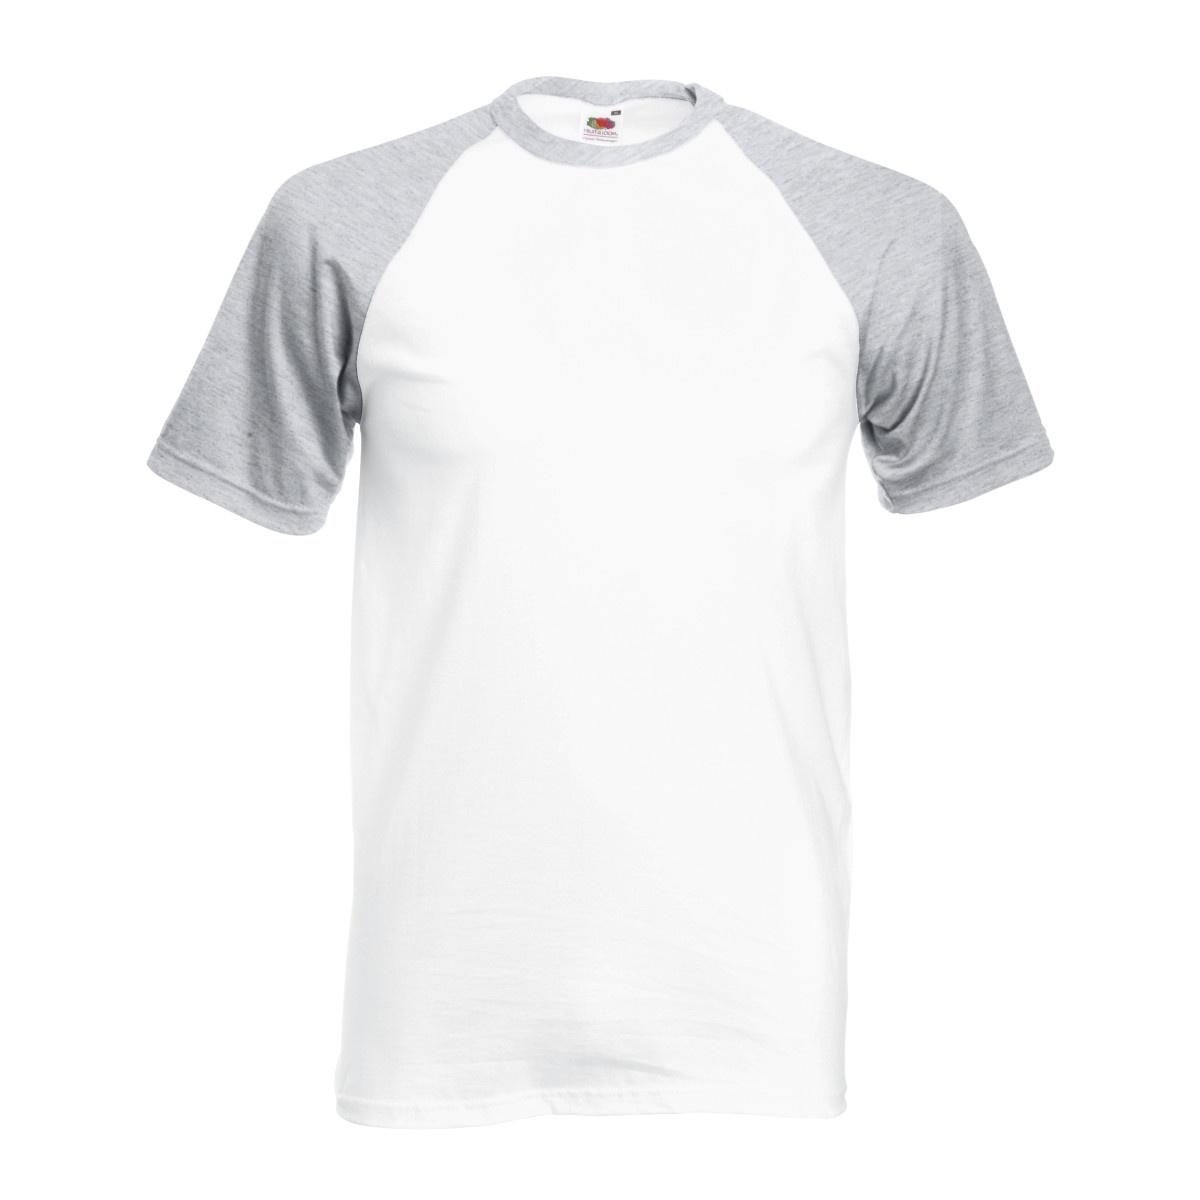 Shop the Latest Collection of Short Sleeve T-Shirts for Men Online at rabbetedh.ga FREE SHIPPING AVAILABLE!